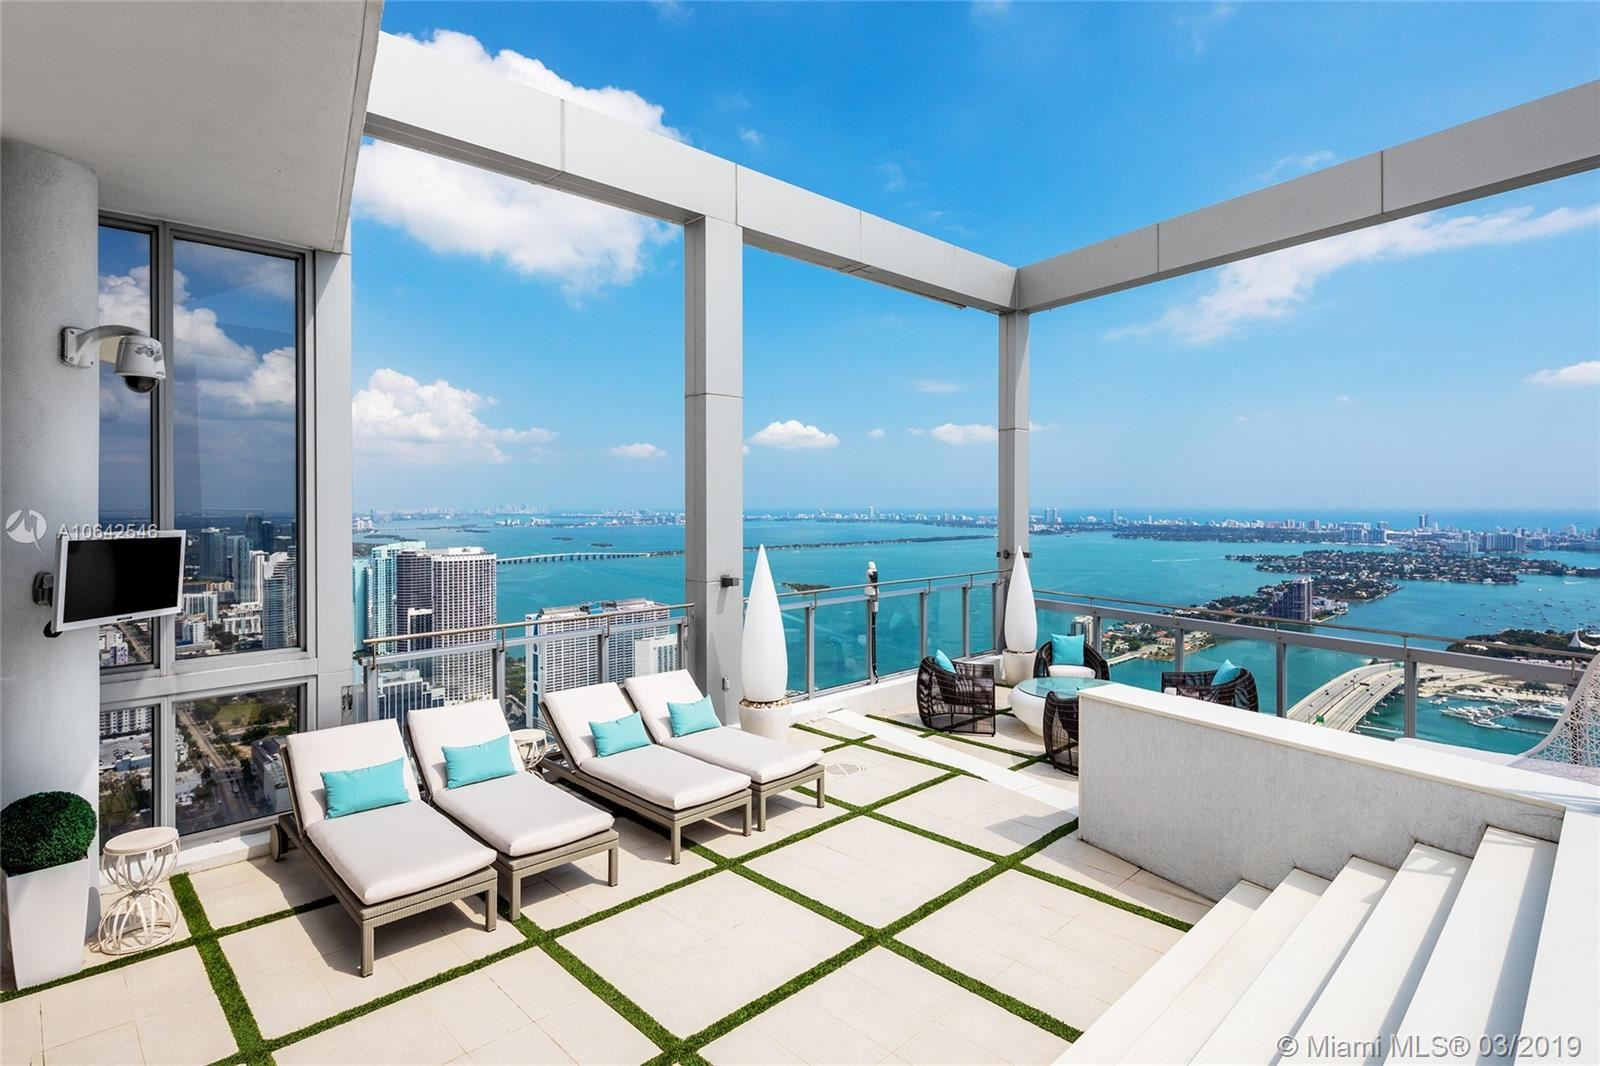 Photo 11 of Listing MLS a10642546 in 1100 Biscayne Blvd #6401 Miami FL 33132